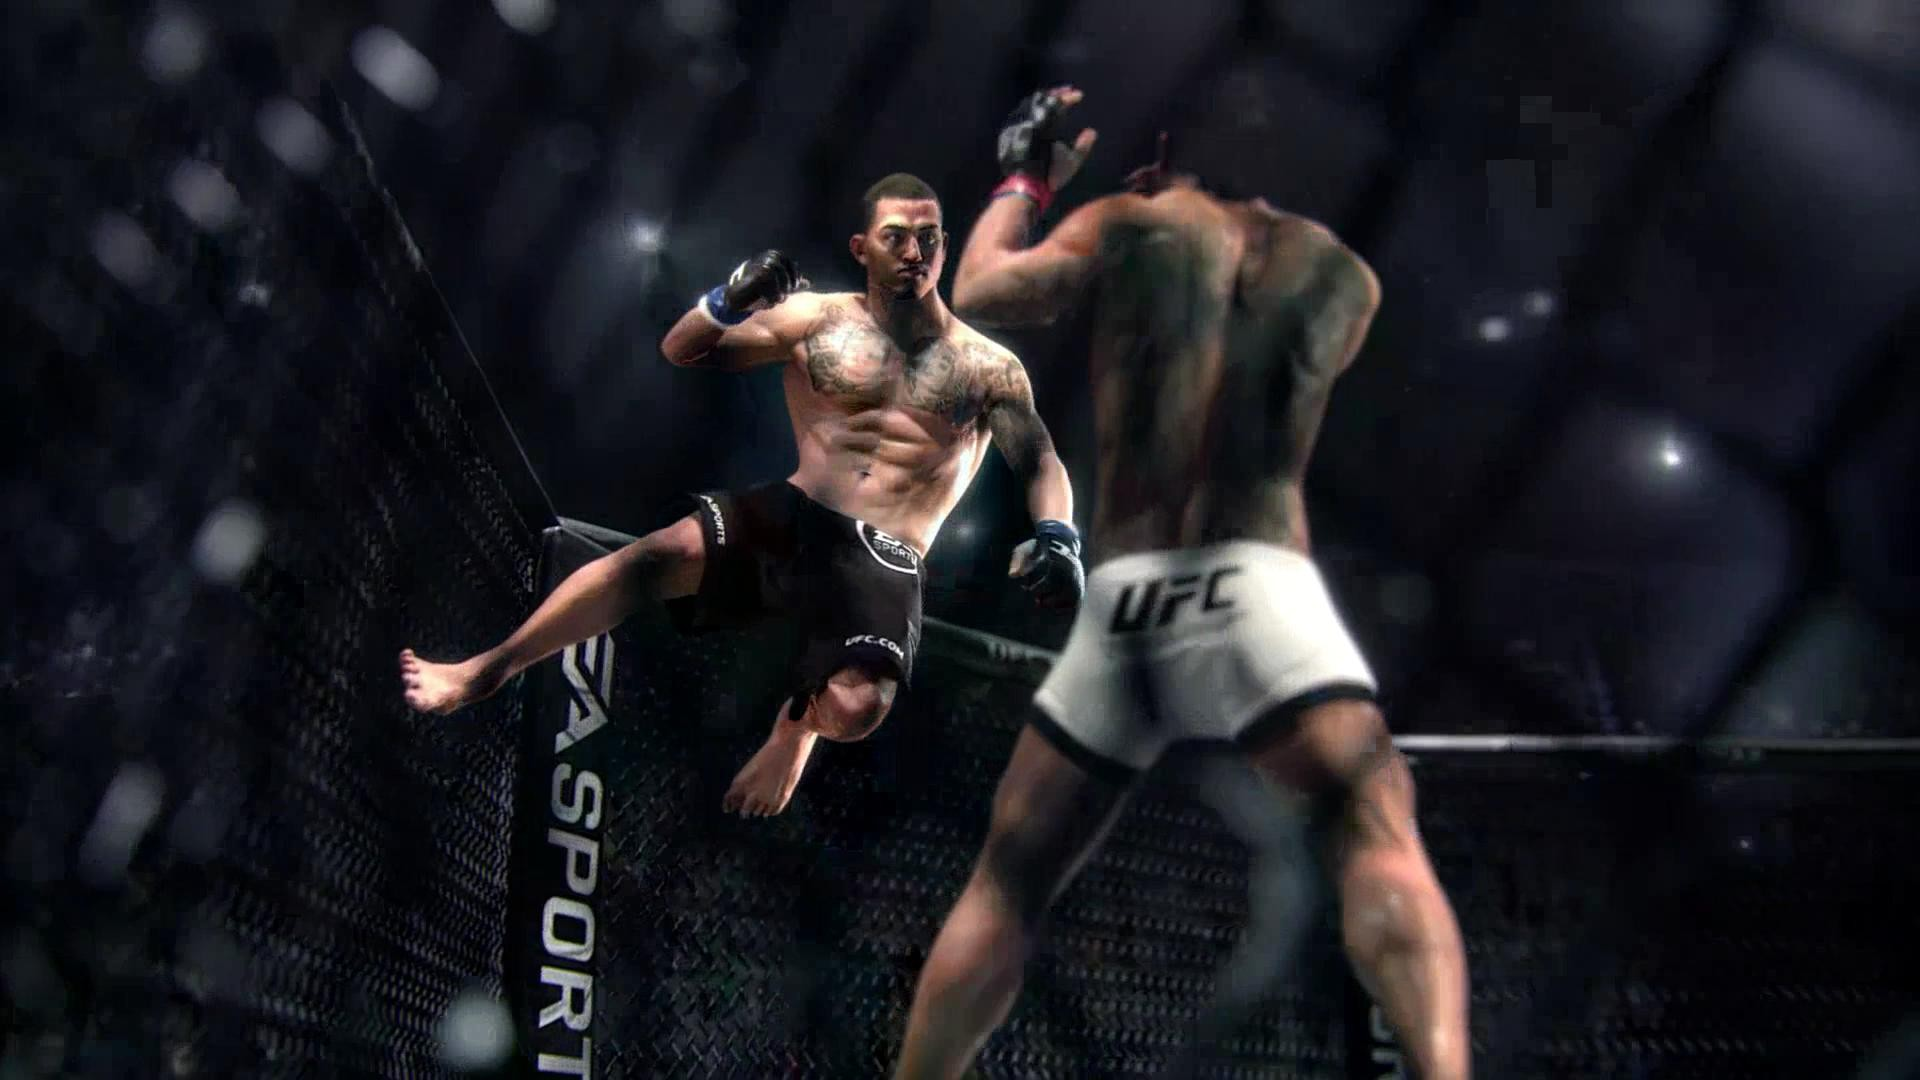 Ea Sports Ufc 2 Zahlreiche Informationen Ps4f Playstation 4 Fan Sony Ps4